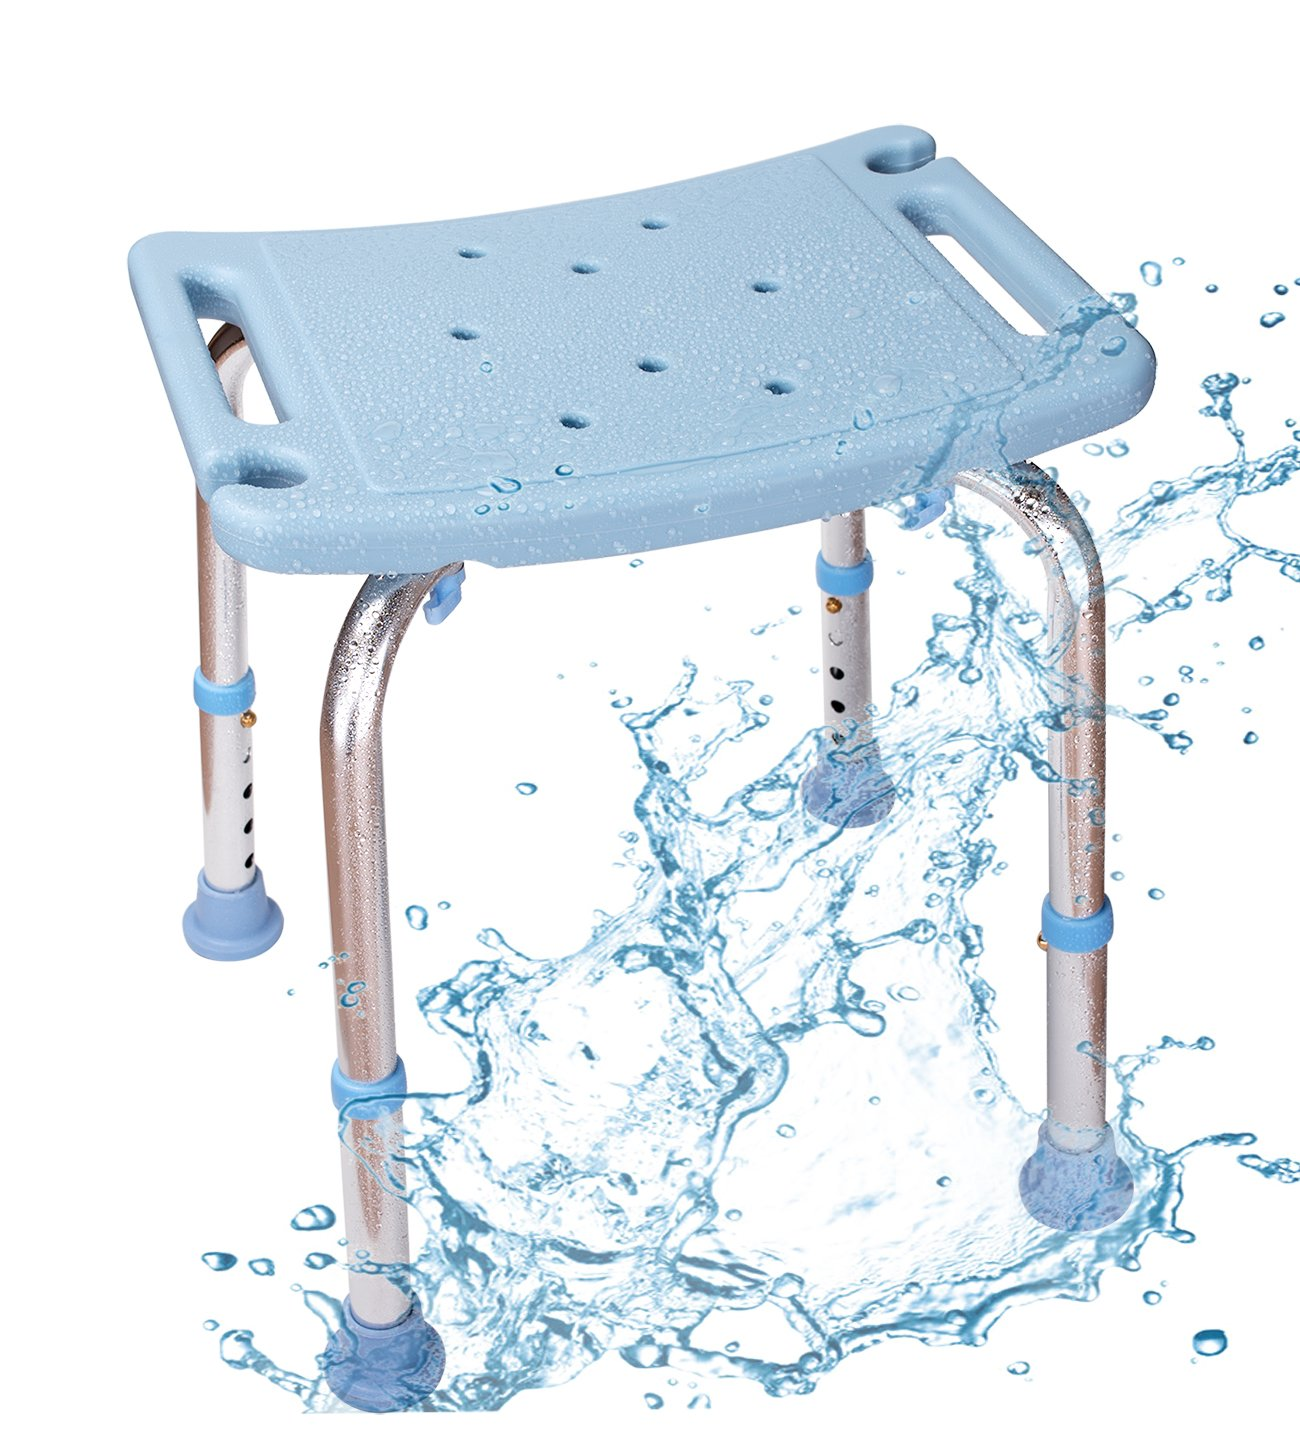 Amazon.com: Shower Chair with Non-Slip Seat,Shower Bench Bath Chair ...